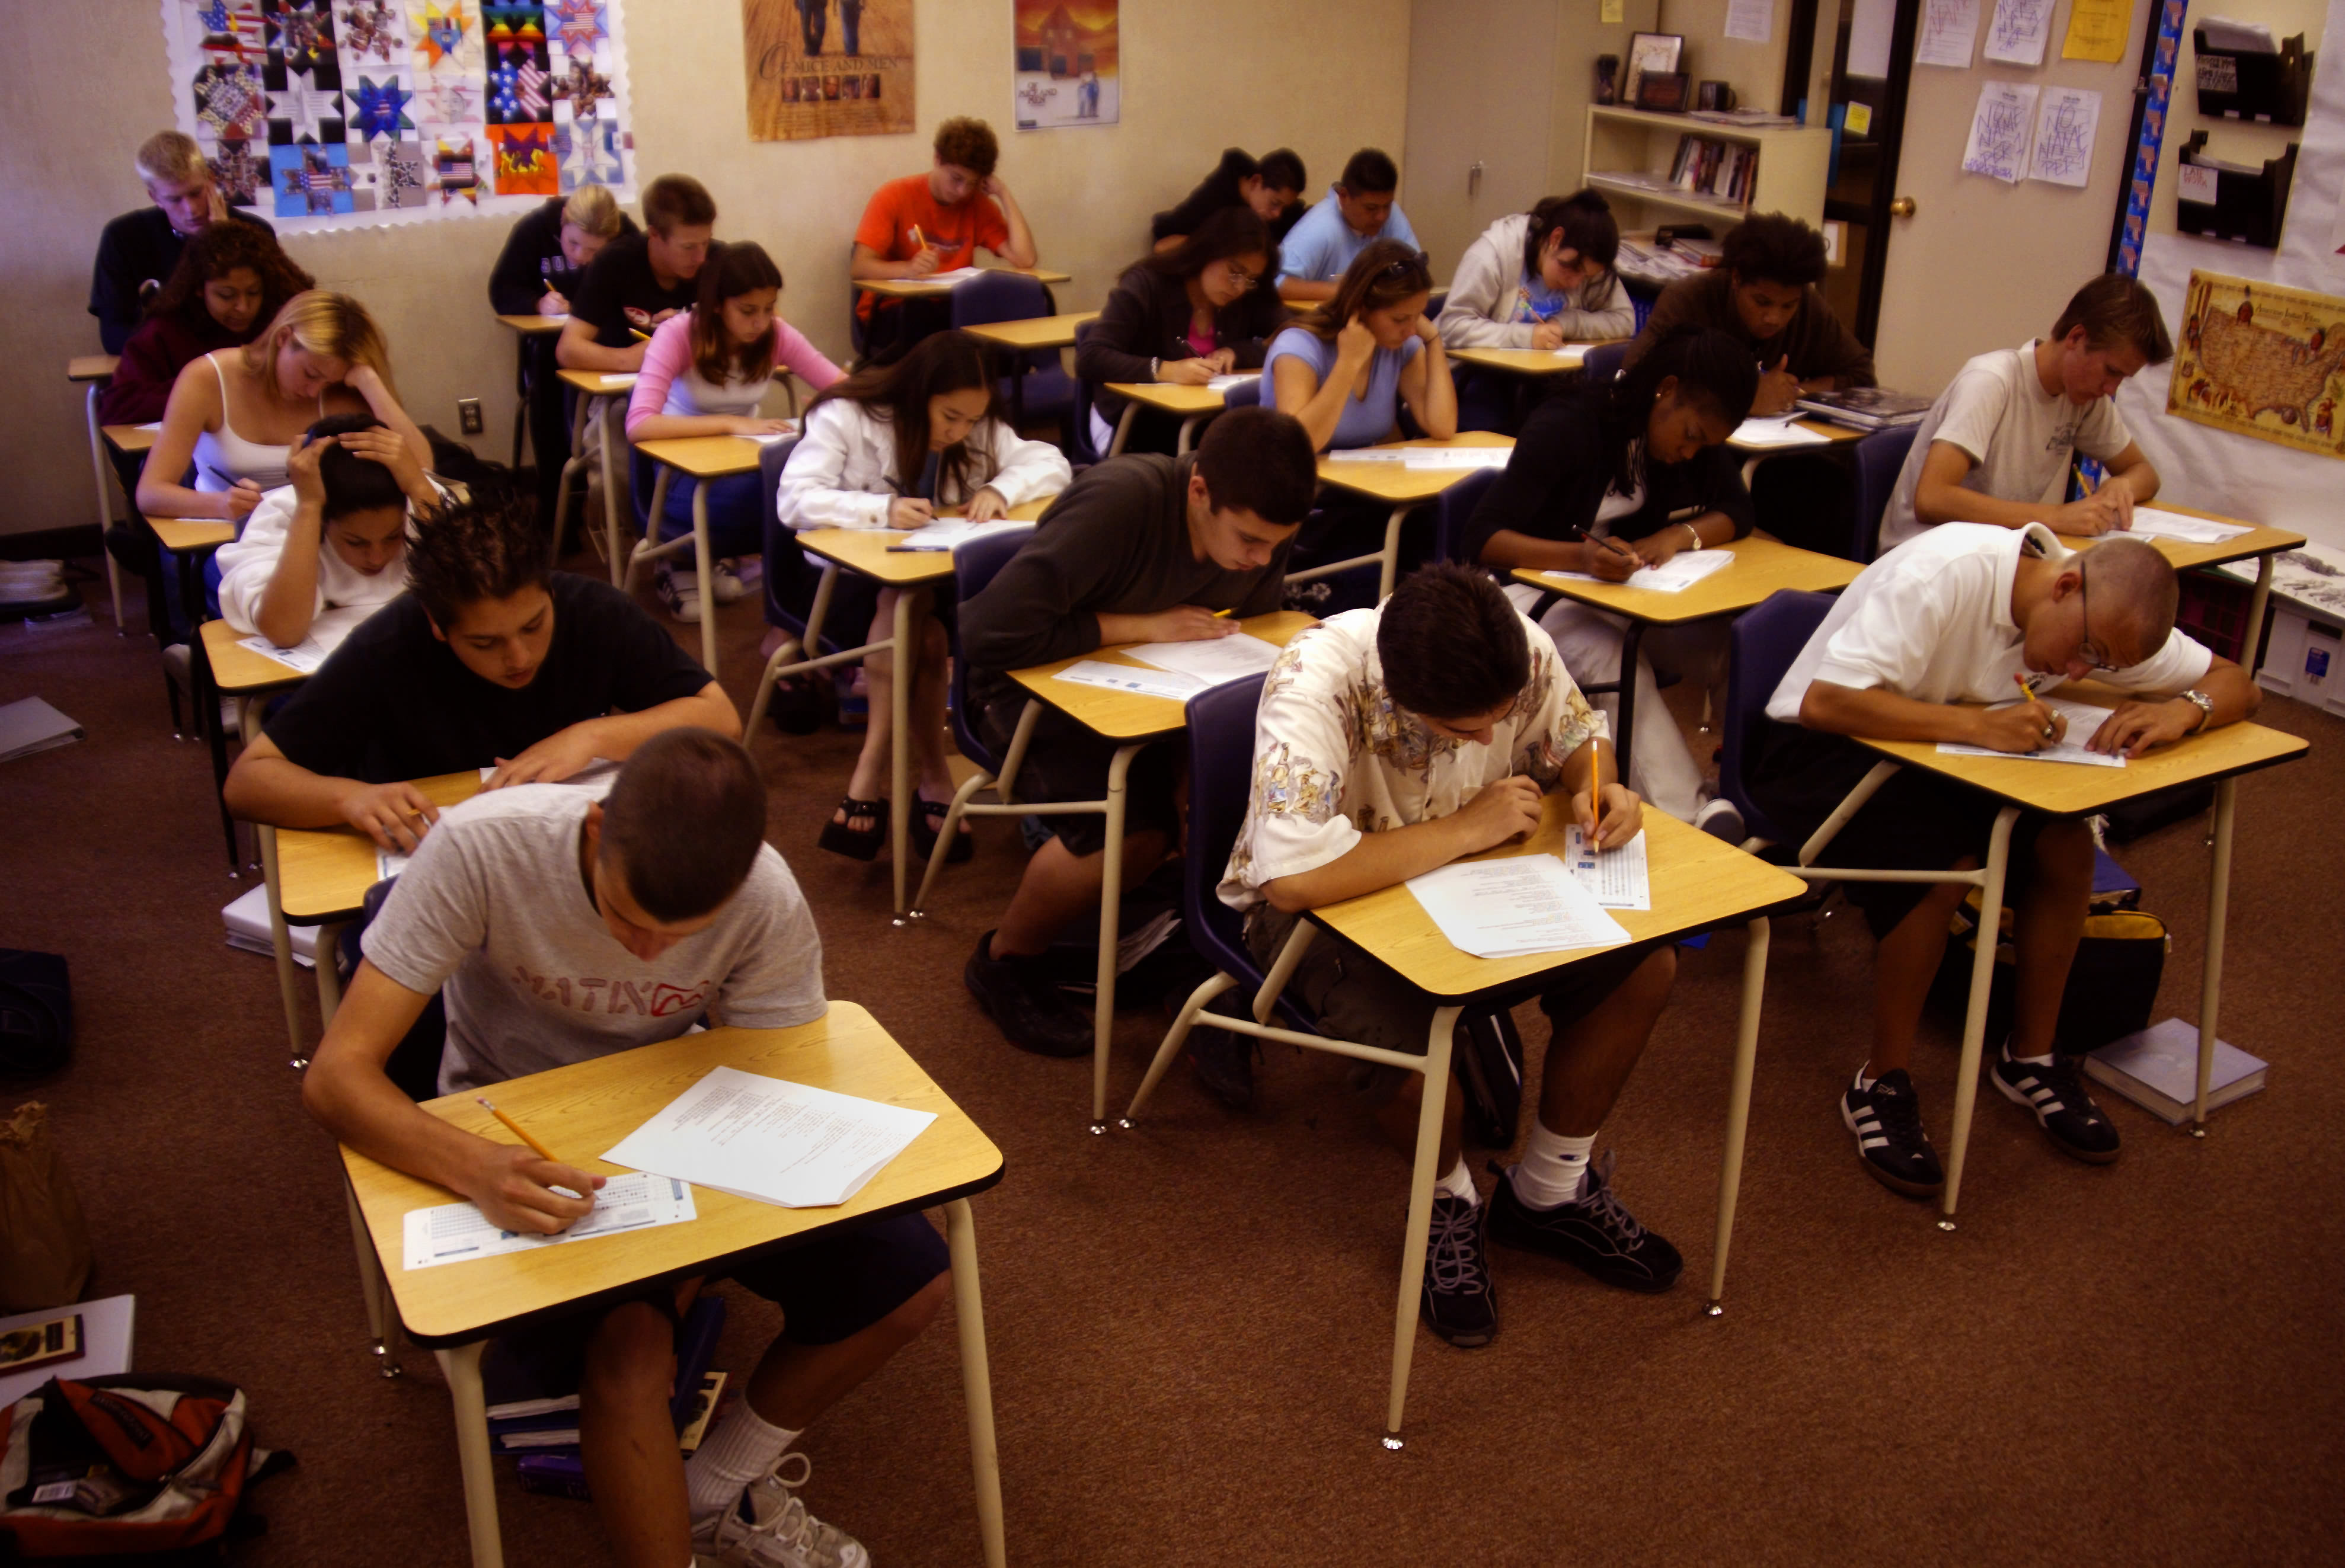 States move to issue high school diplomas retroactively